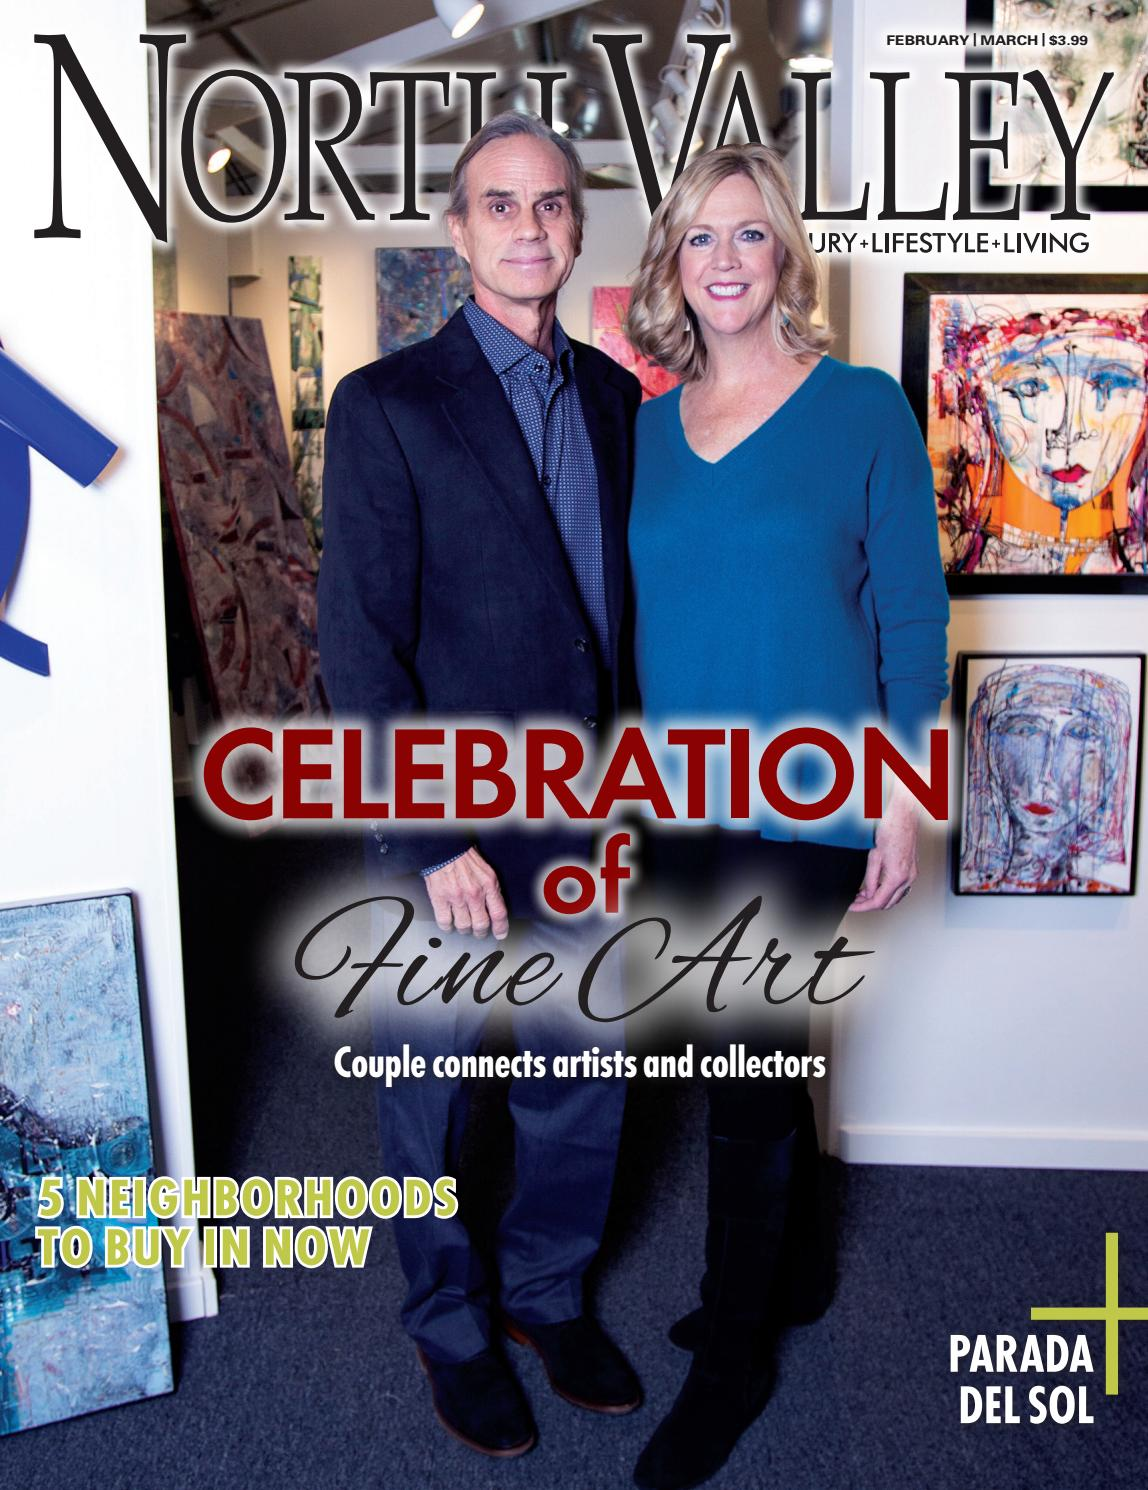 15a962408b0 North Valley Magazine February March 2019 by Times Media Group - issuu